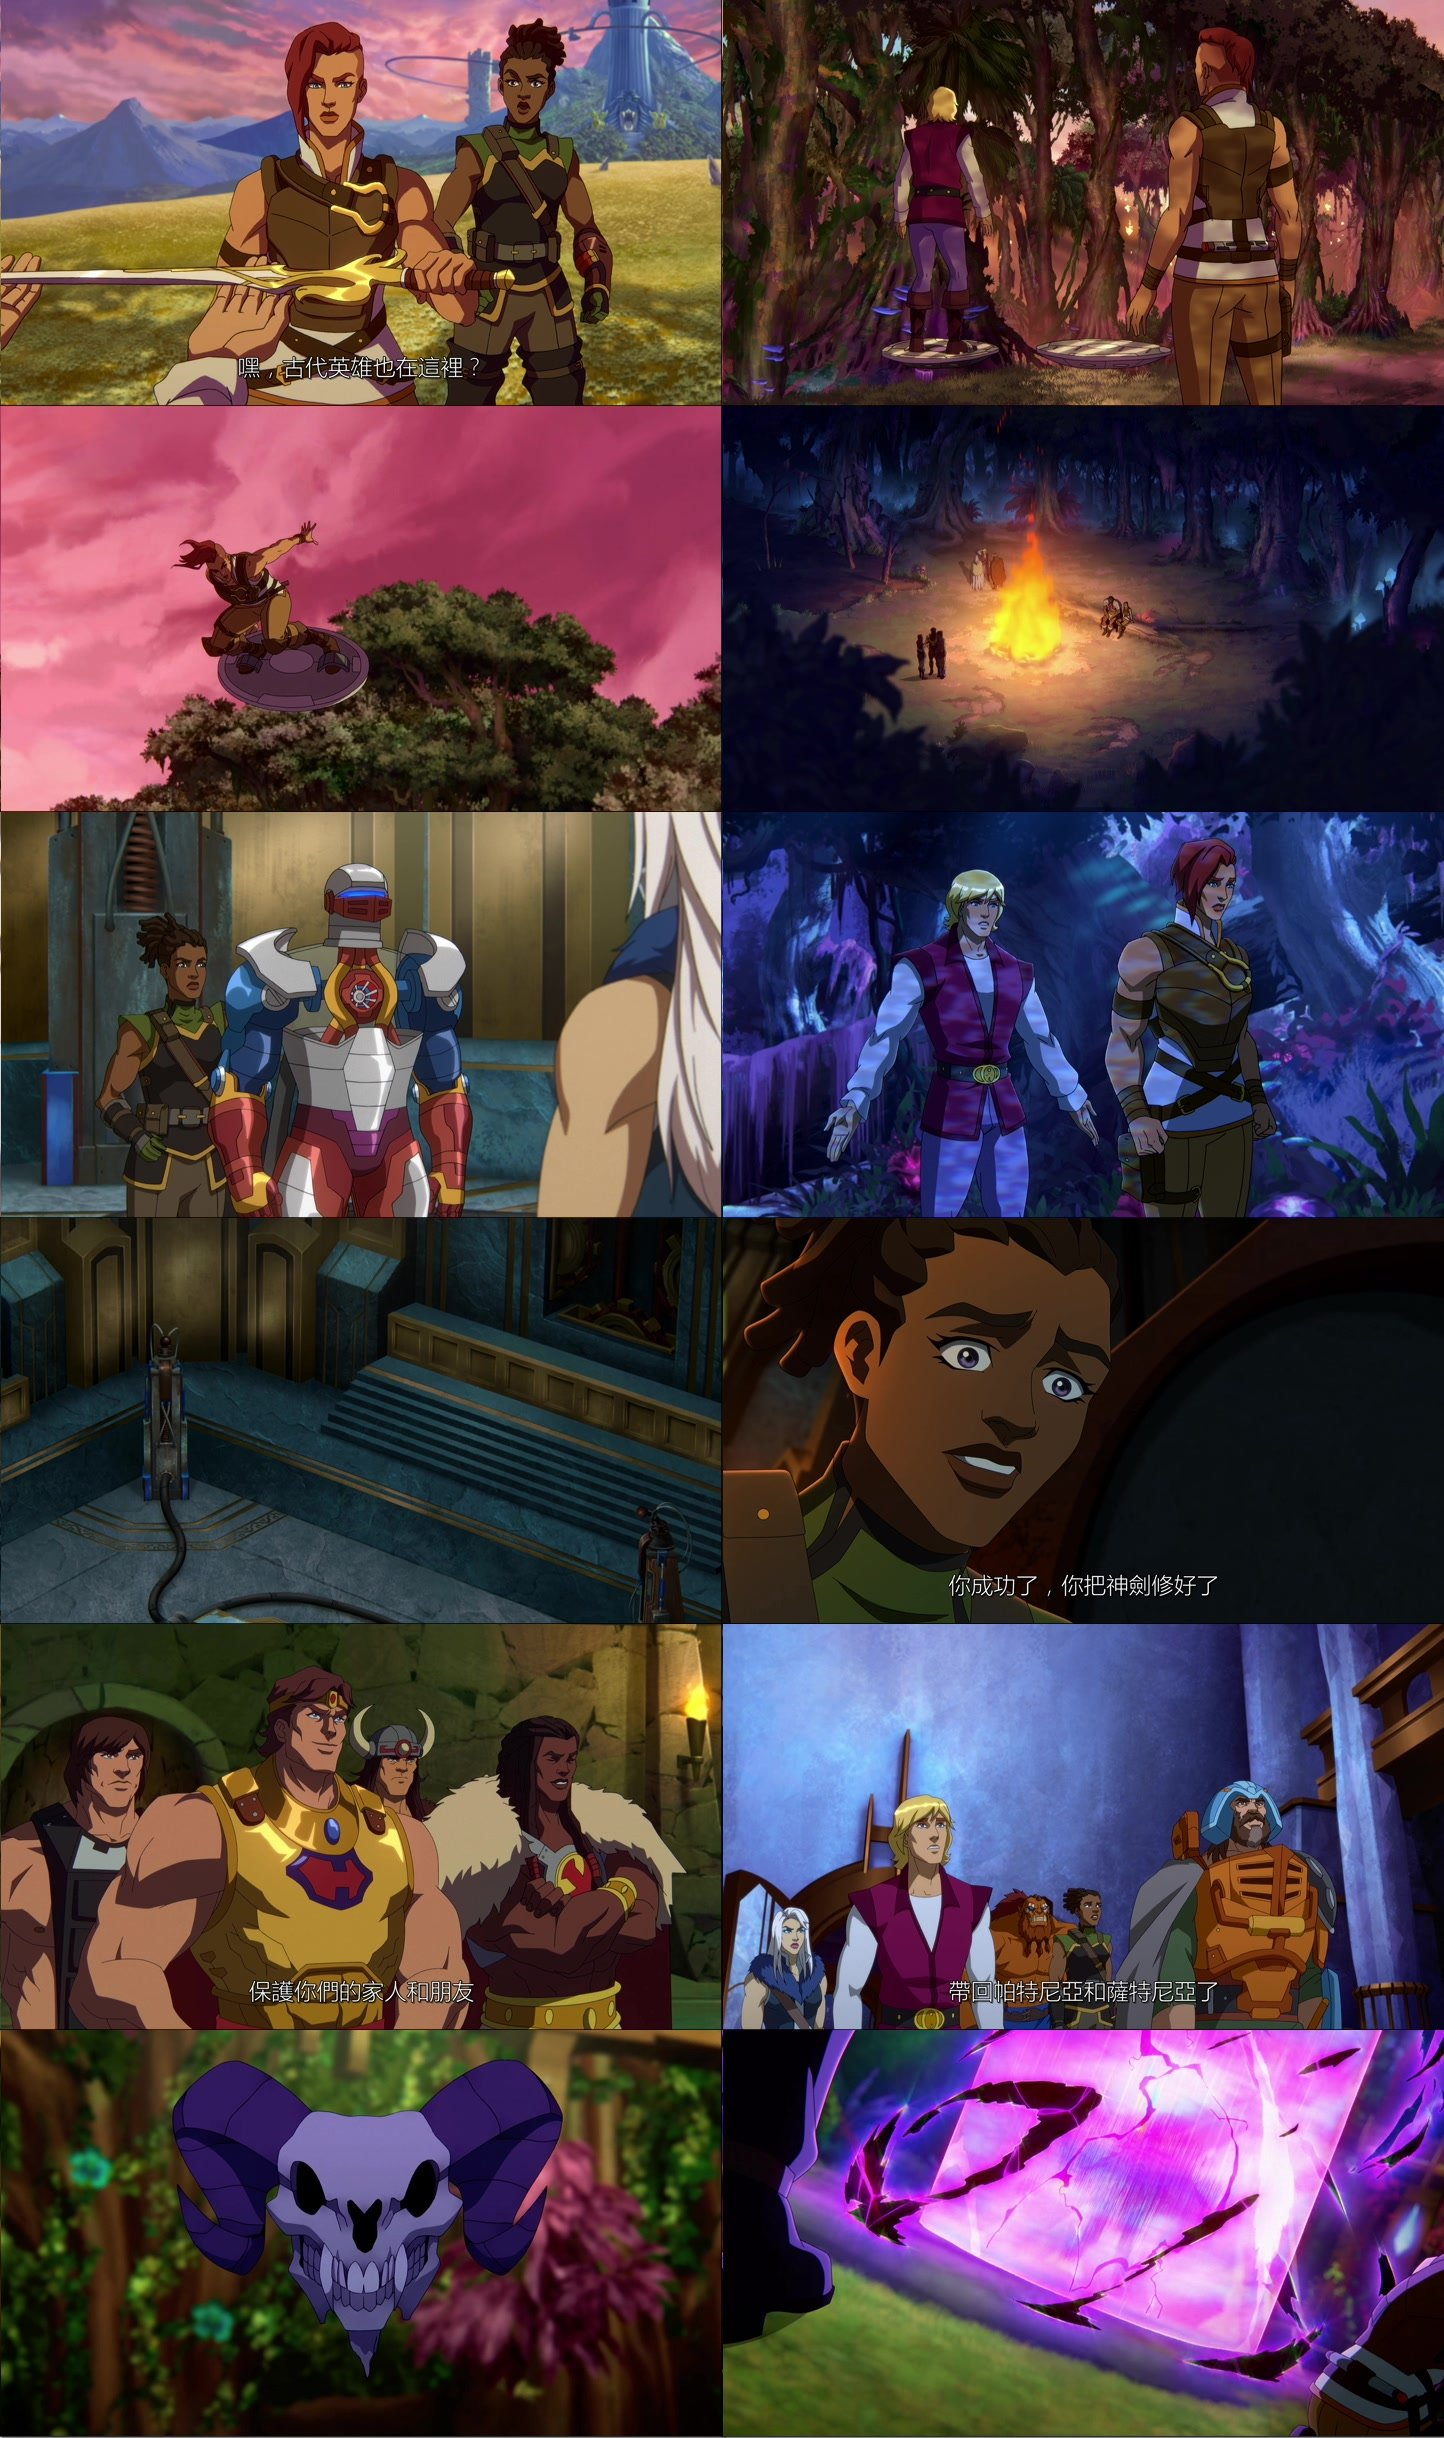 Masters.of.the.Universe.Revelation.S01E05.The.Forge.at.the.Forest.of.Forever.1080p.NF.WEB-DL.DDP5.1.H.264-AGLET.mkv